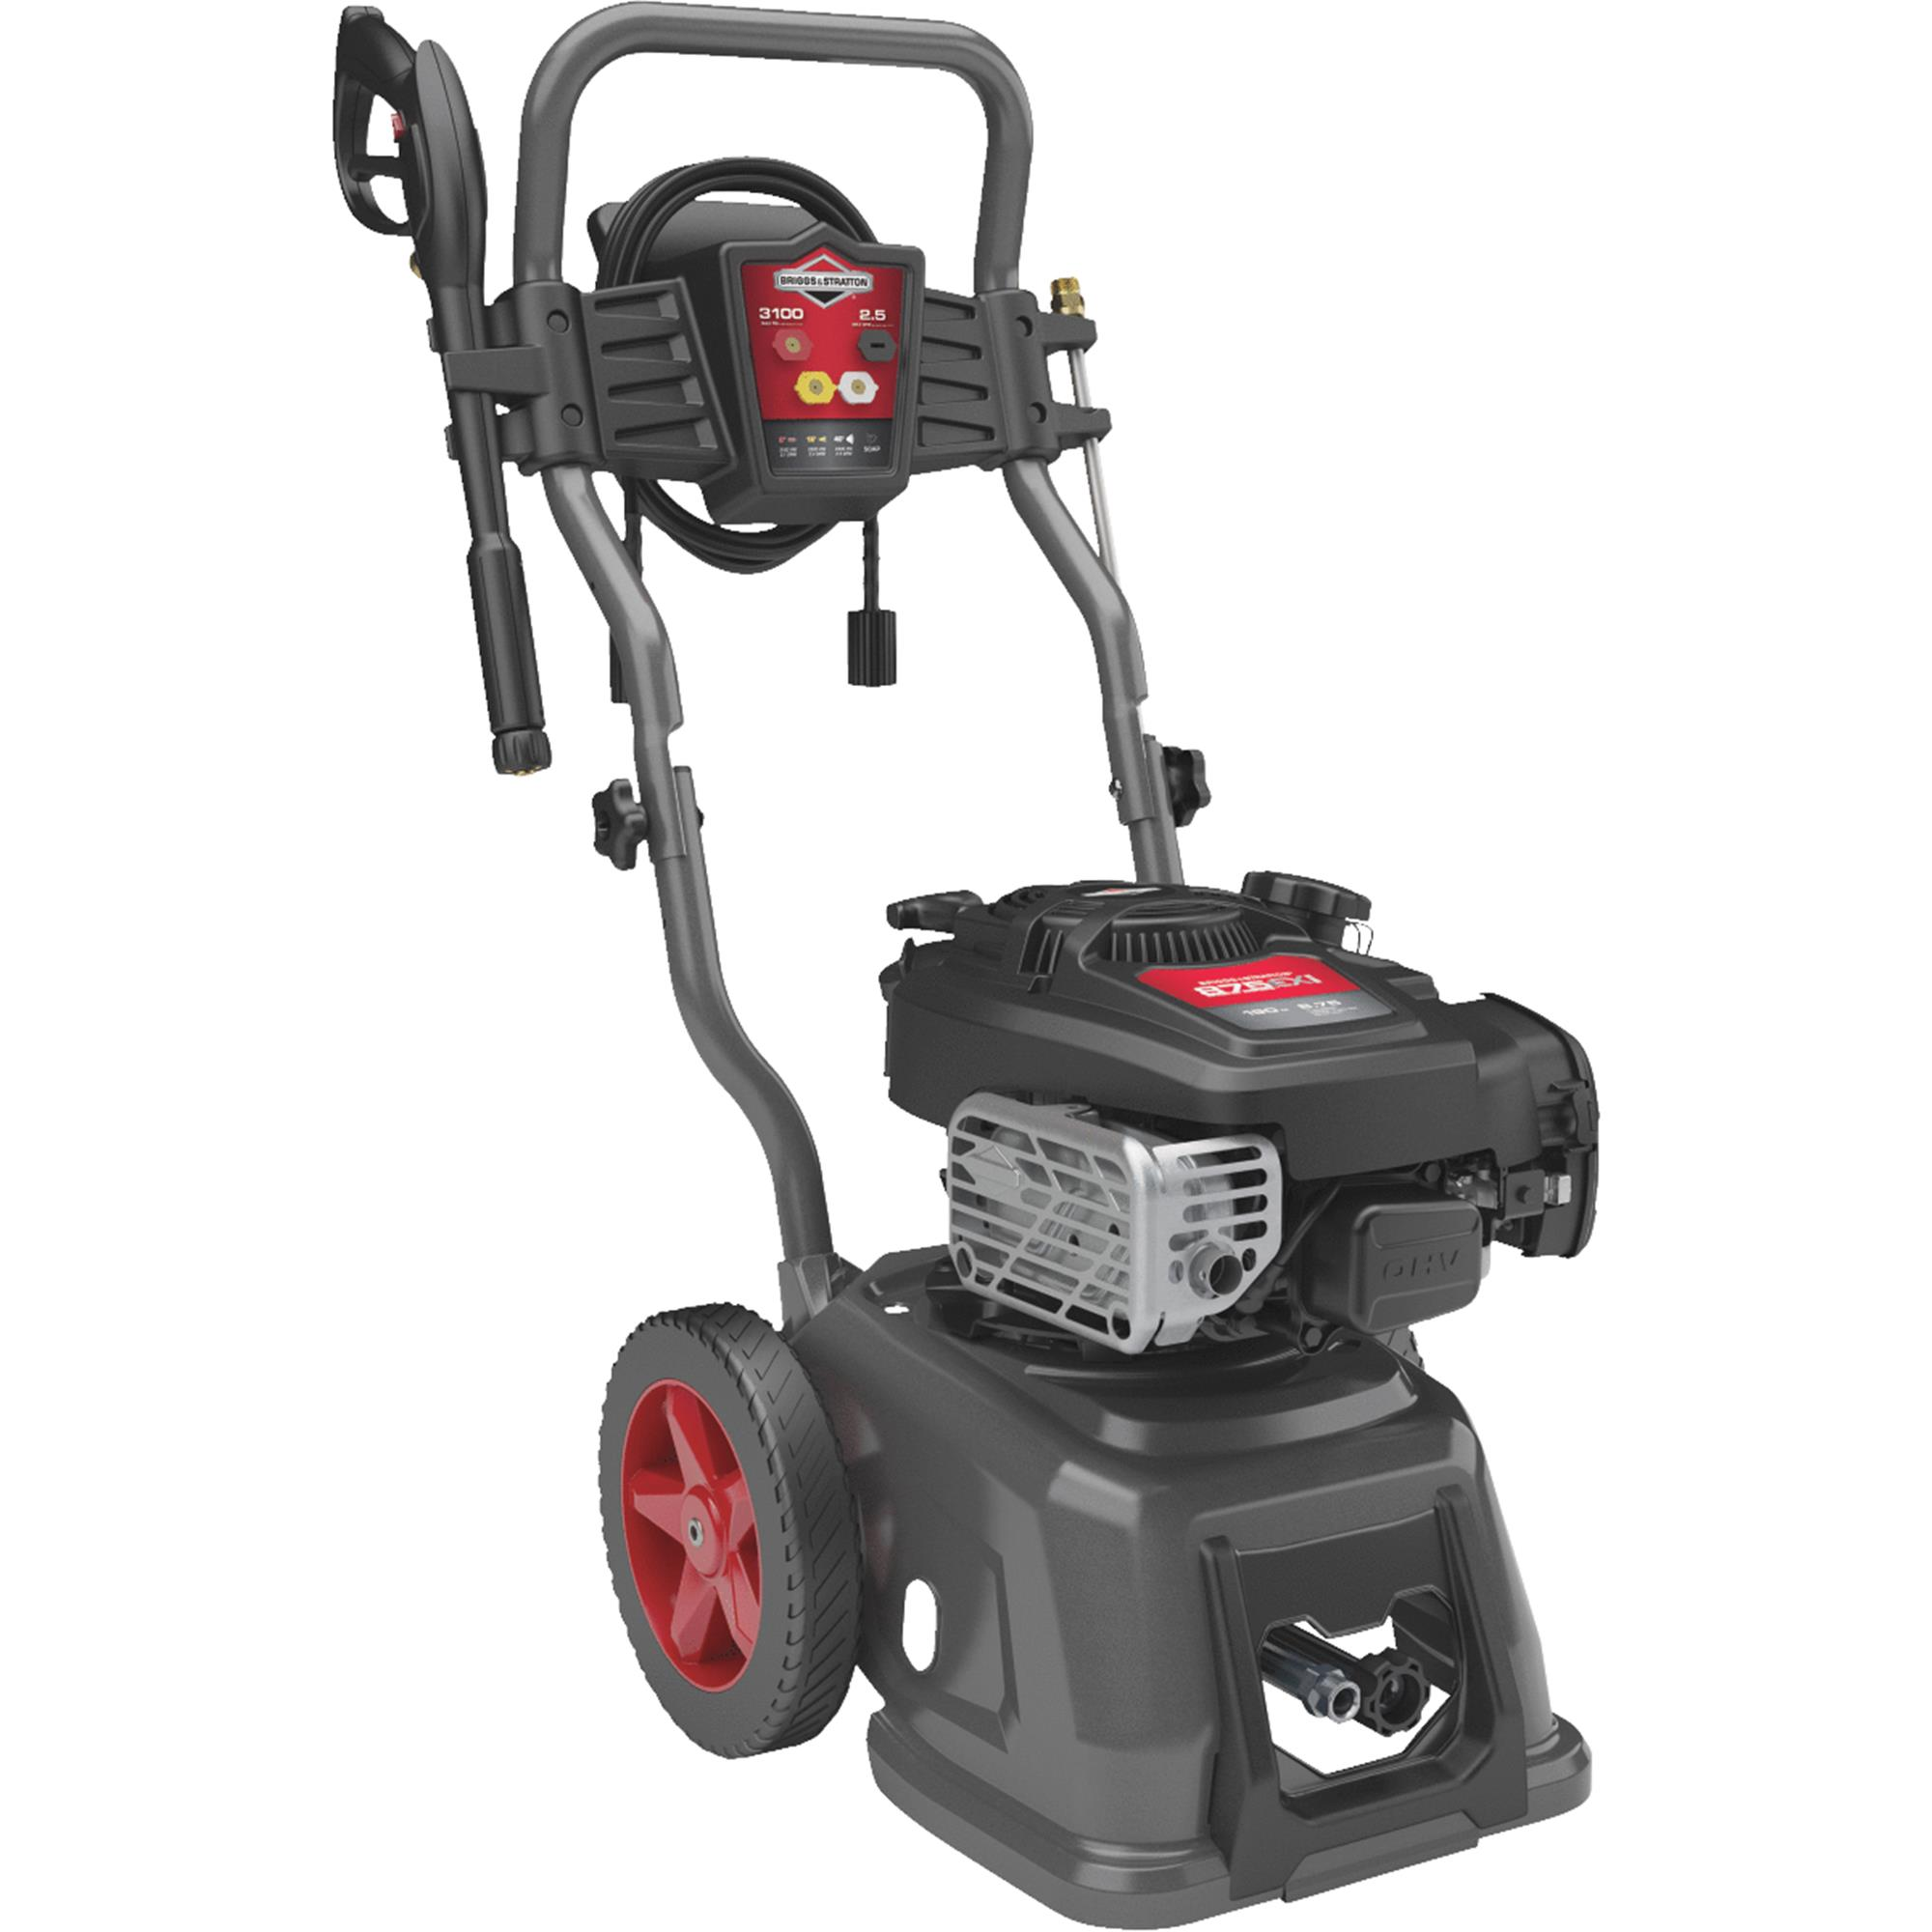 Briggs & Stratton 3100 psi Cold Water Gas Pressure Washer